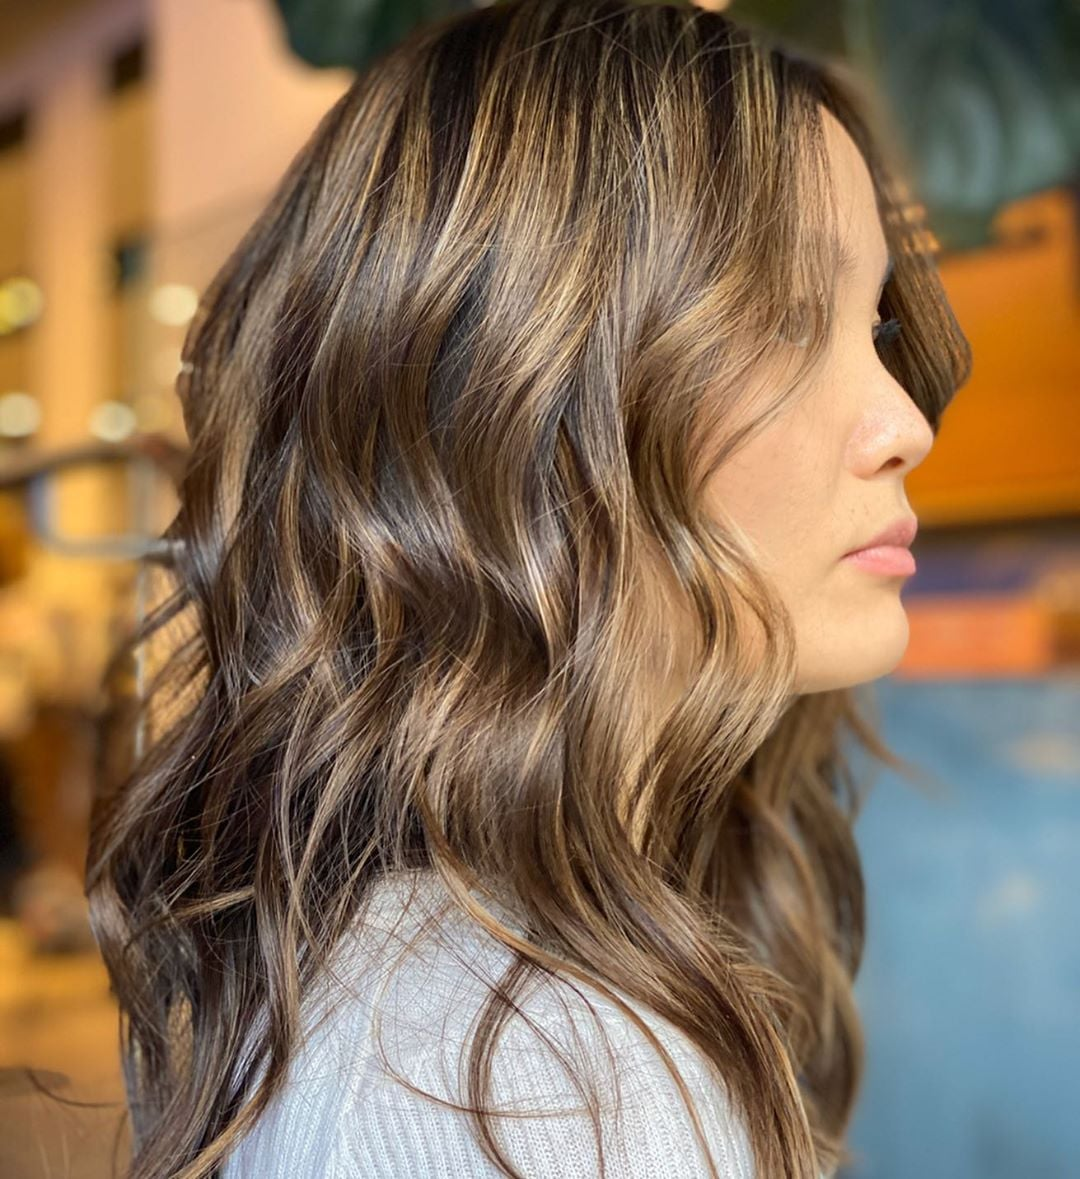 Hair Color Trends To Try Summer 2020 Popsugar Beauty,Country French Bedroom Ideas